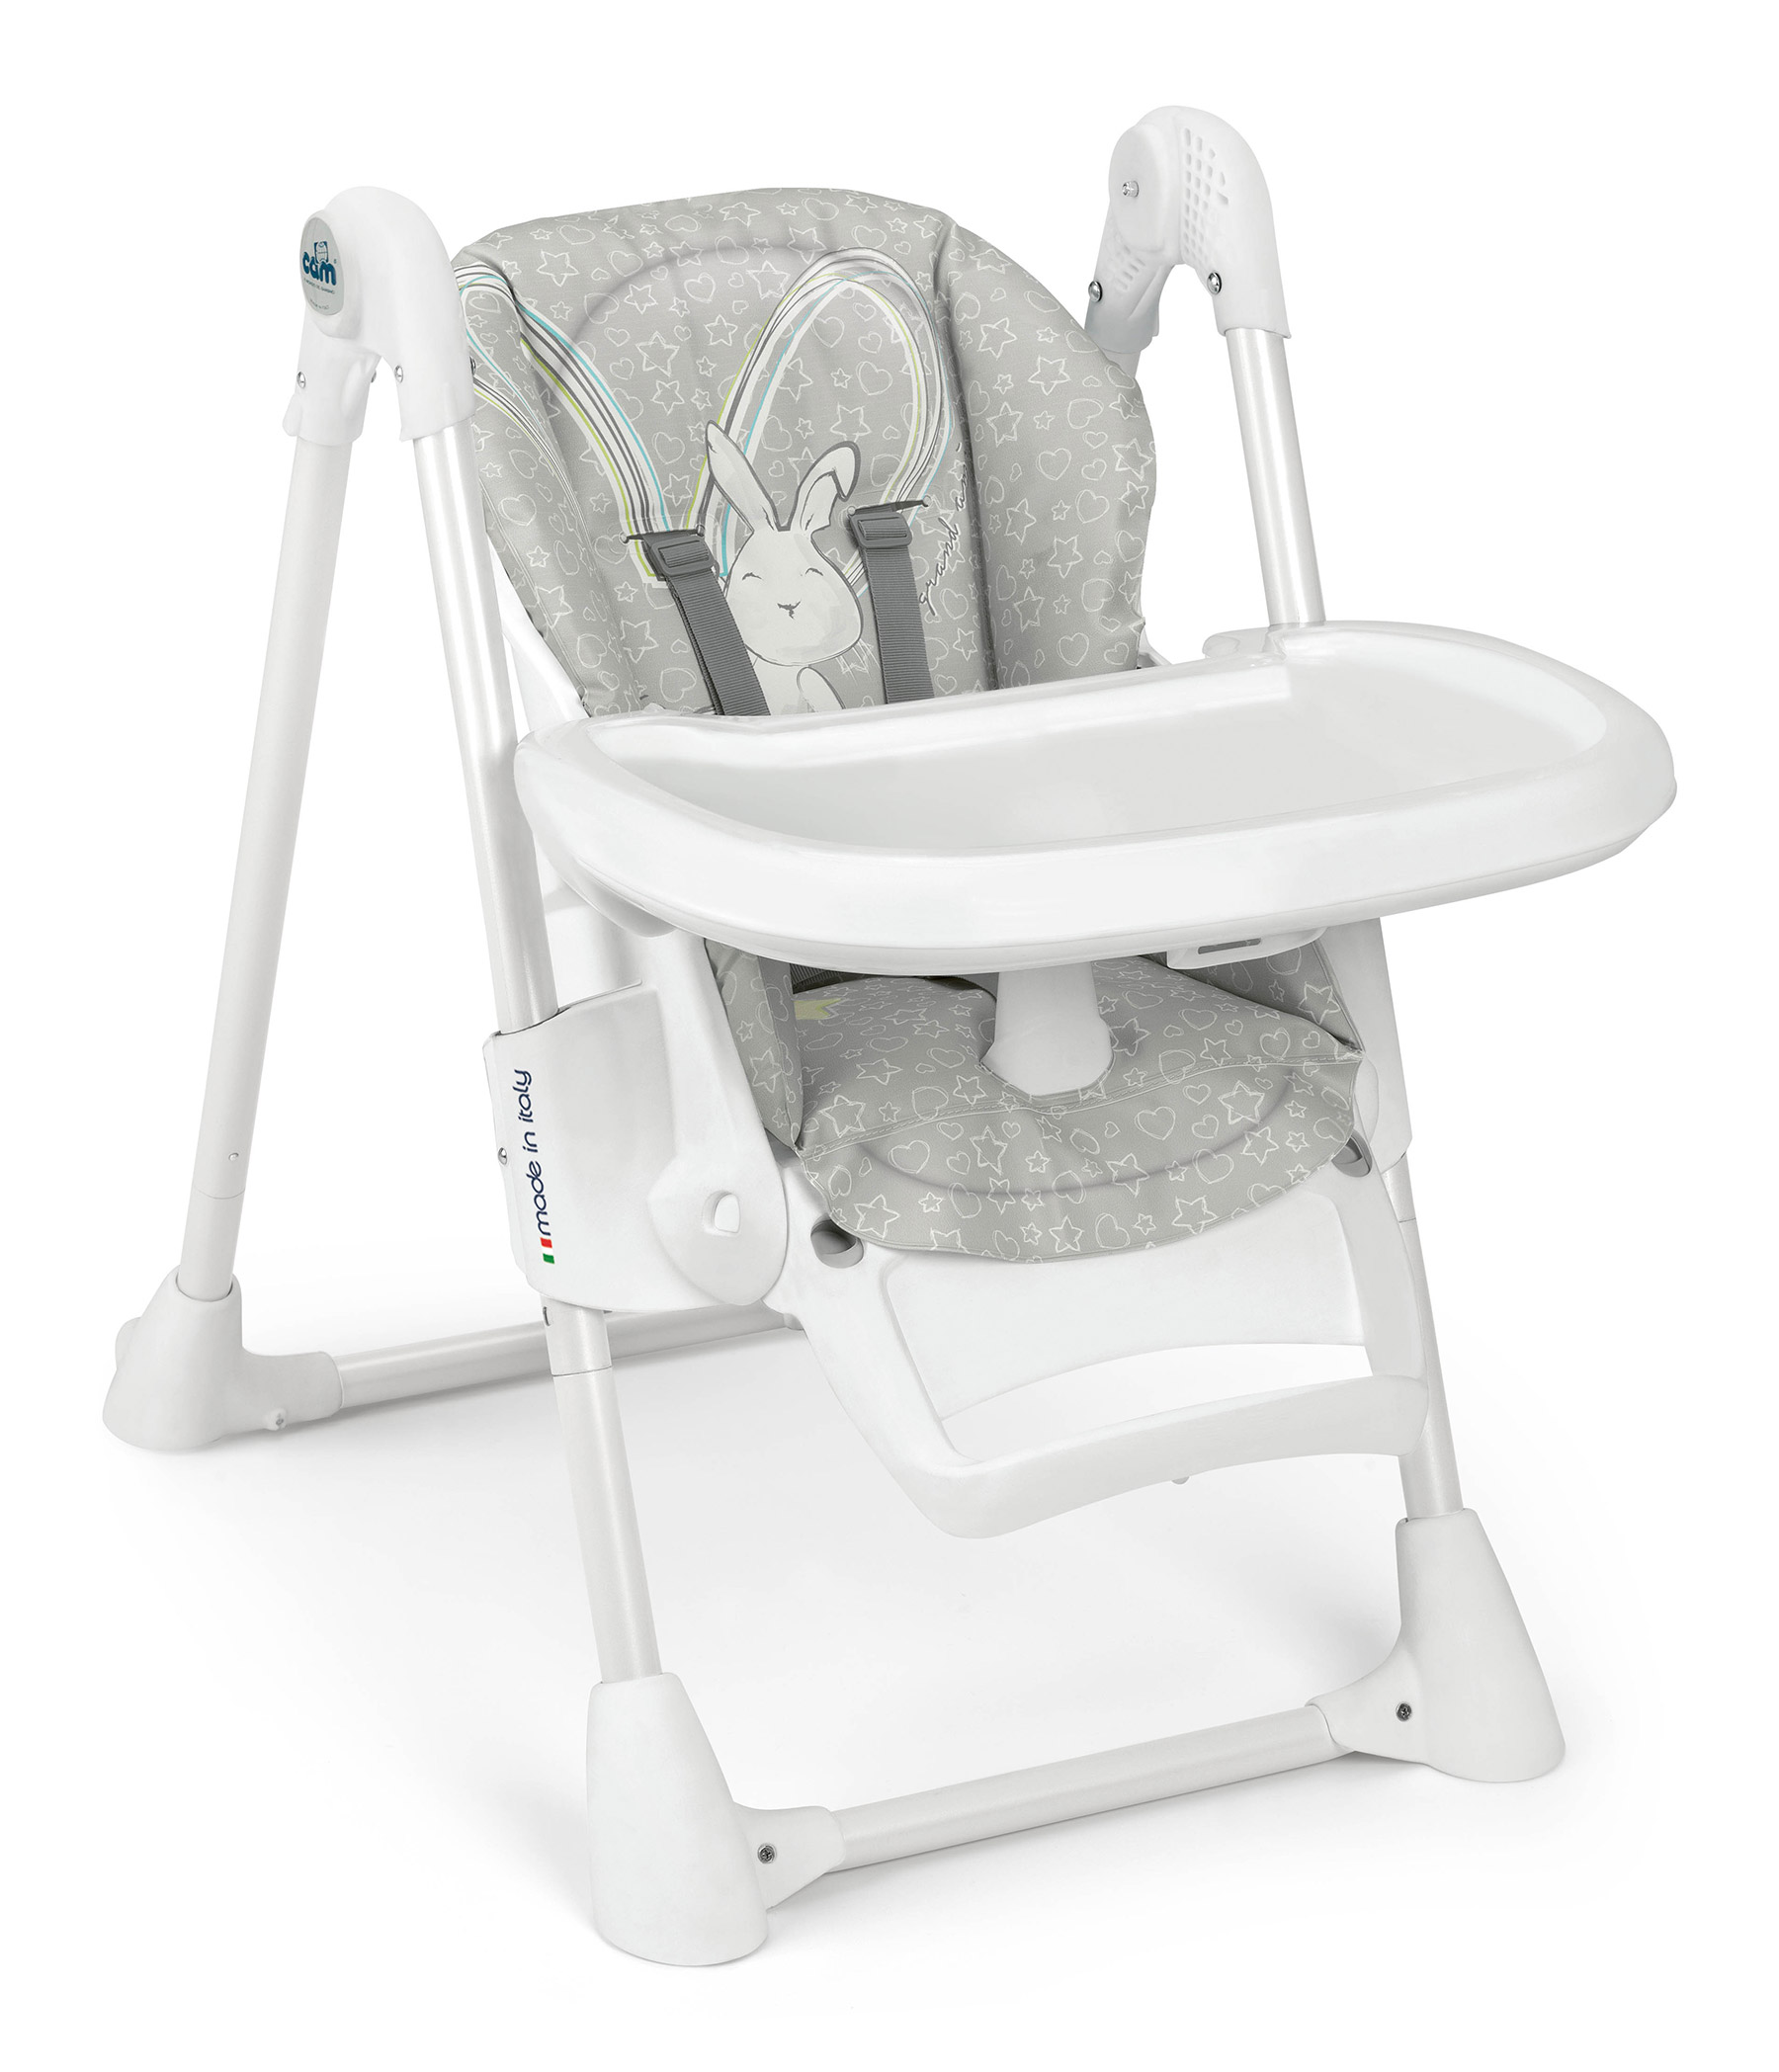 buy baby high chairs desk chair goes down cam pappananna s2250 series in dubai